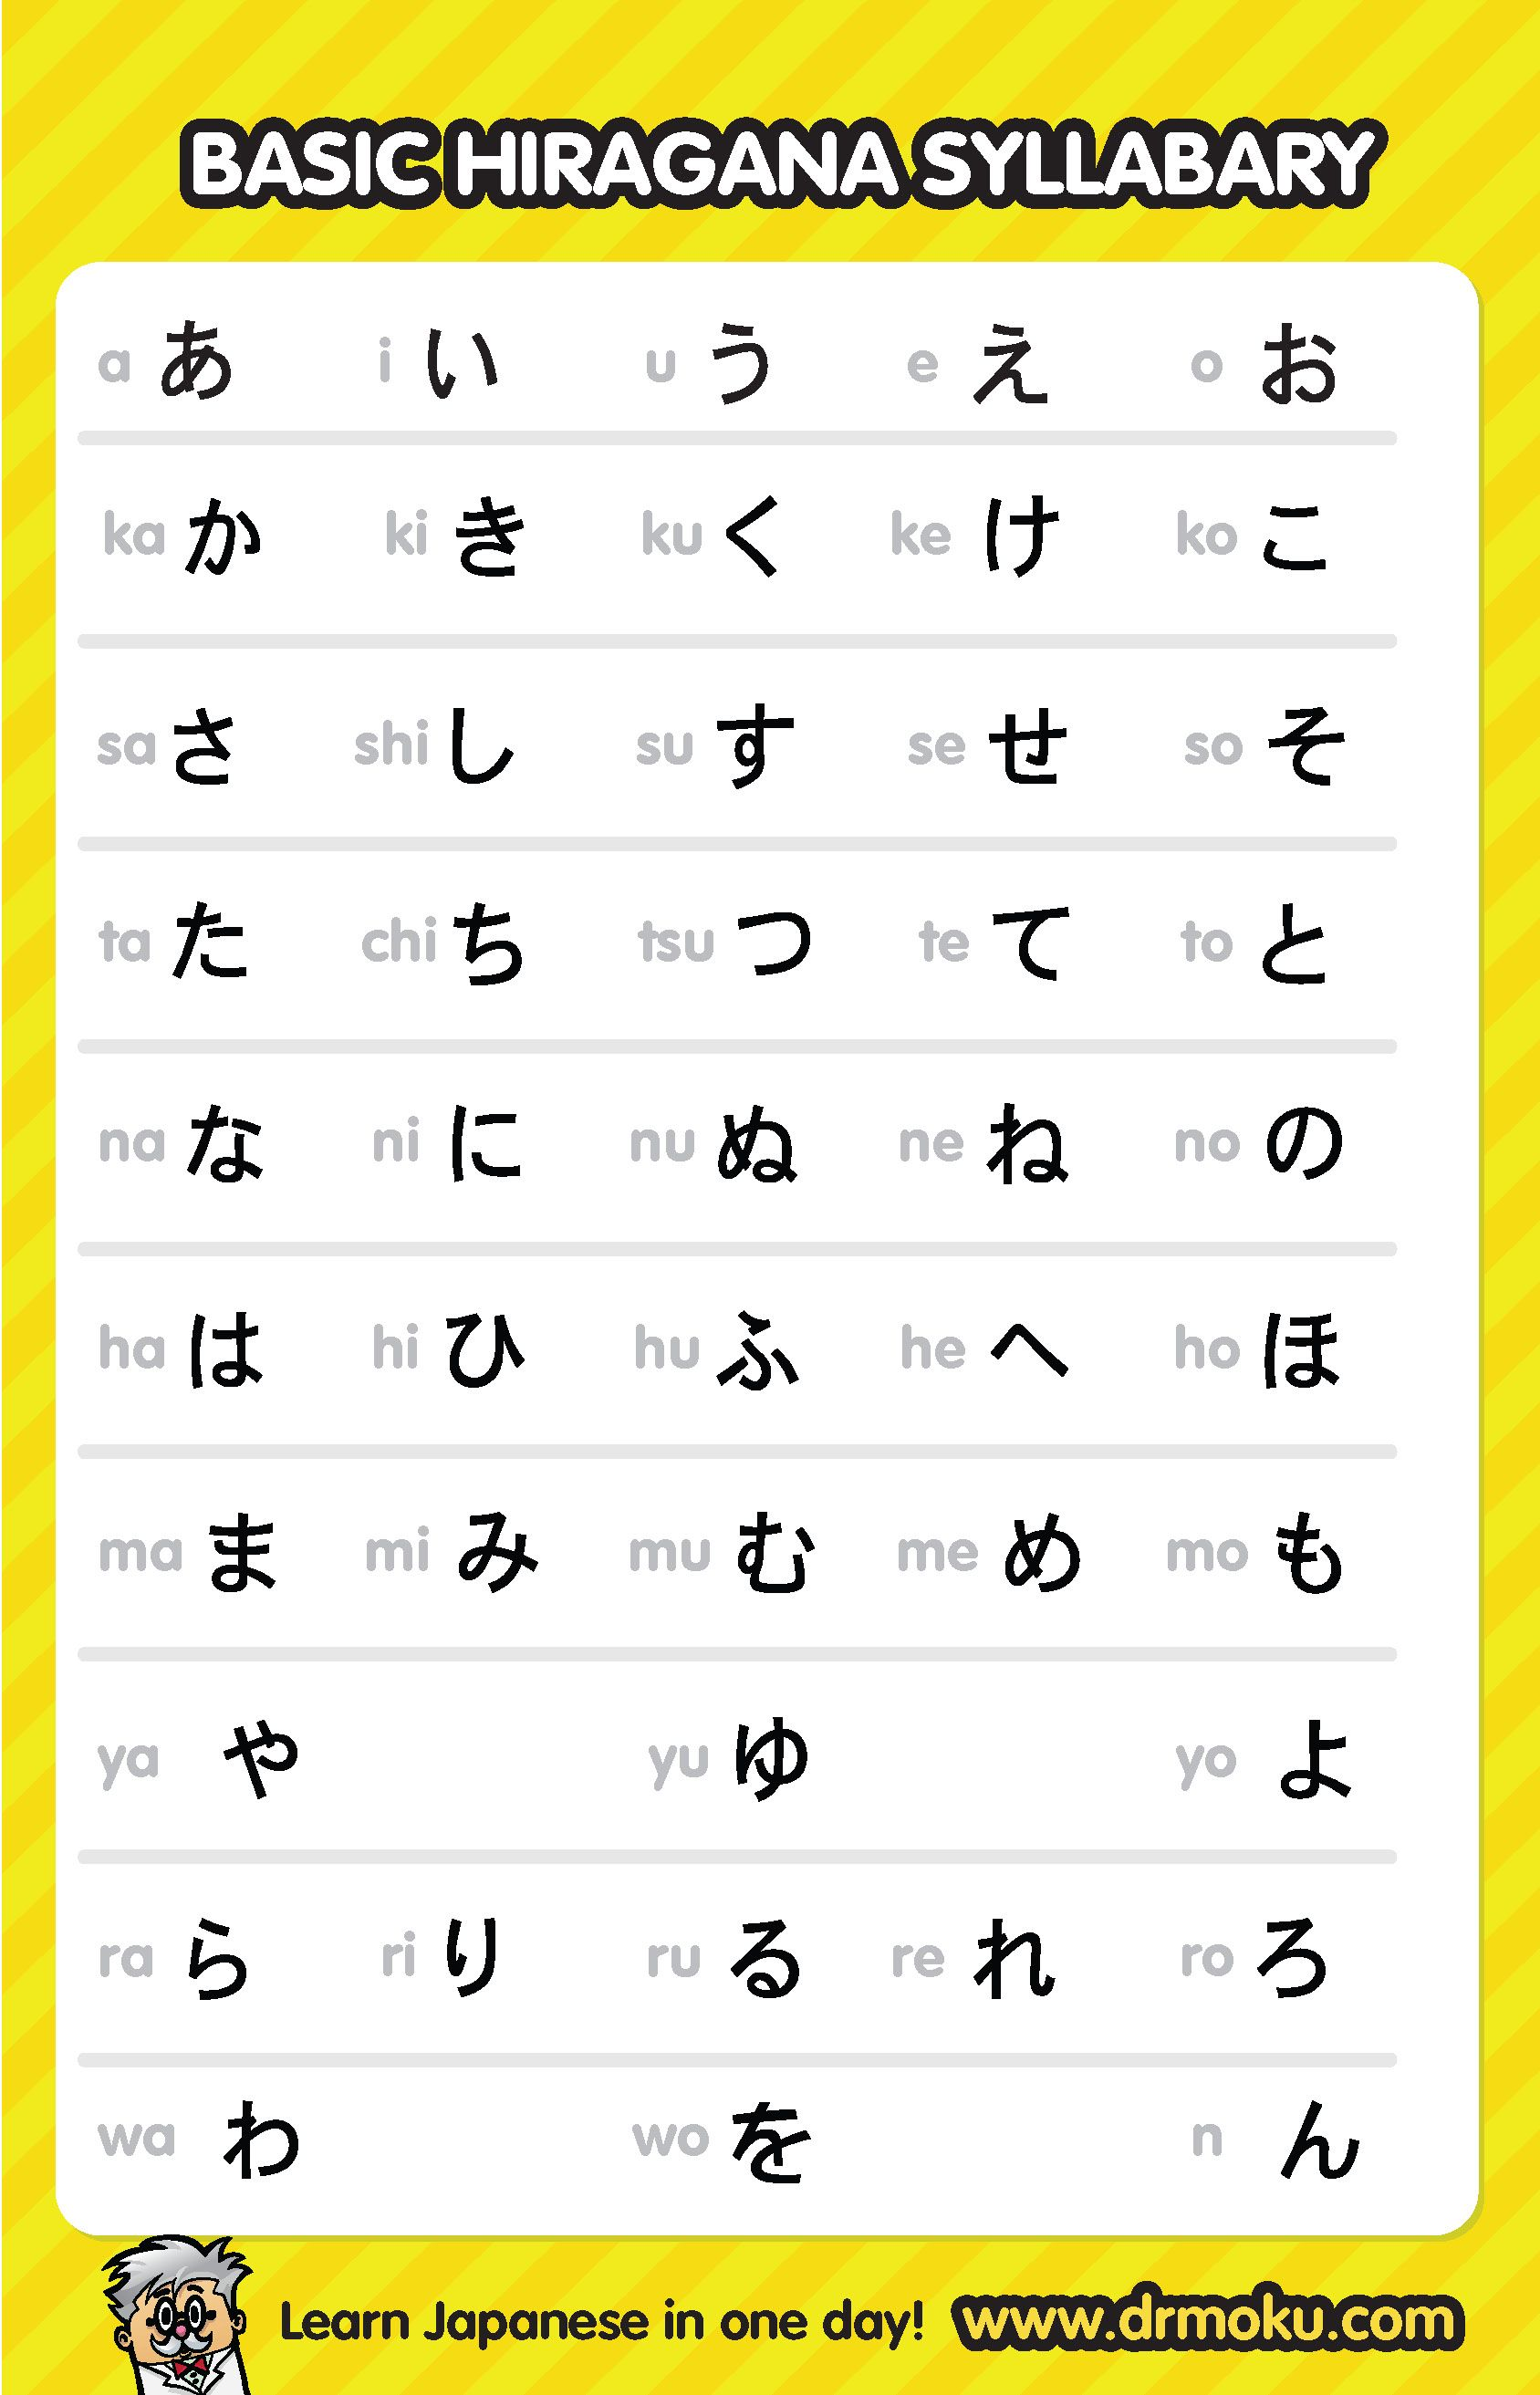 Hiragana Charts Basic Syllabary